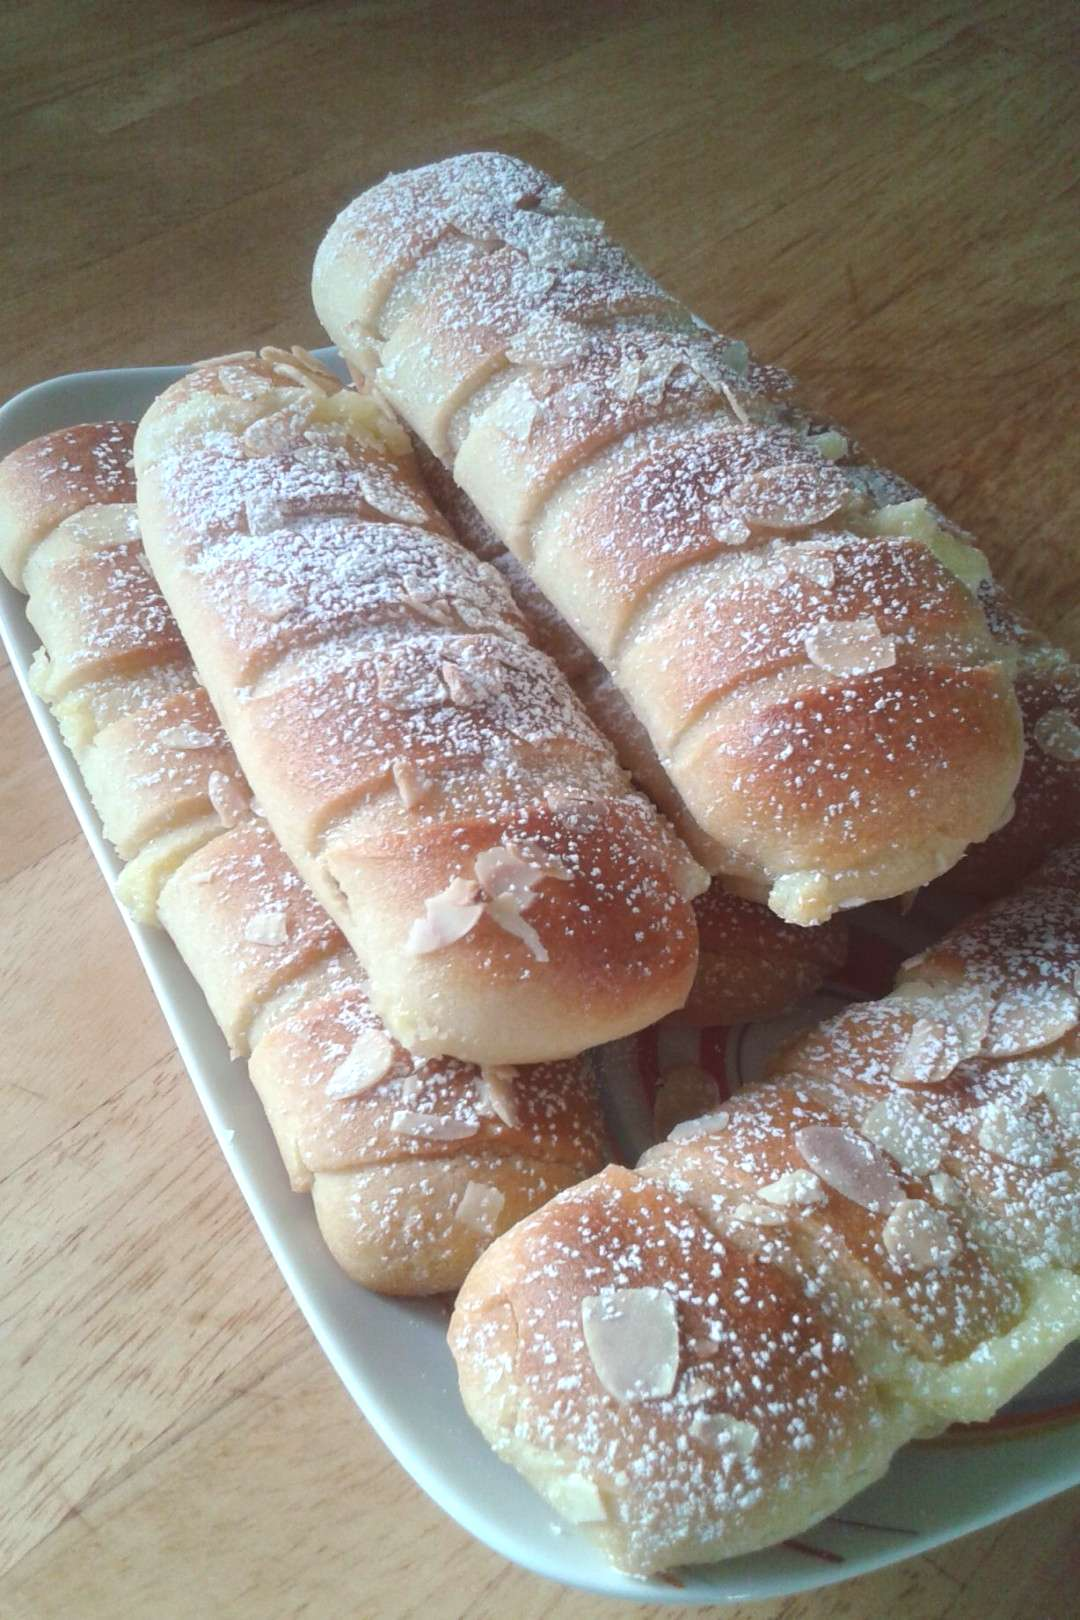 Brioche buns with pastry cream and almonds  Informations About Petits pains briochés à la crème